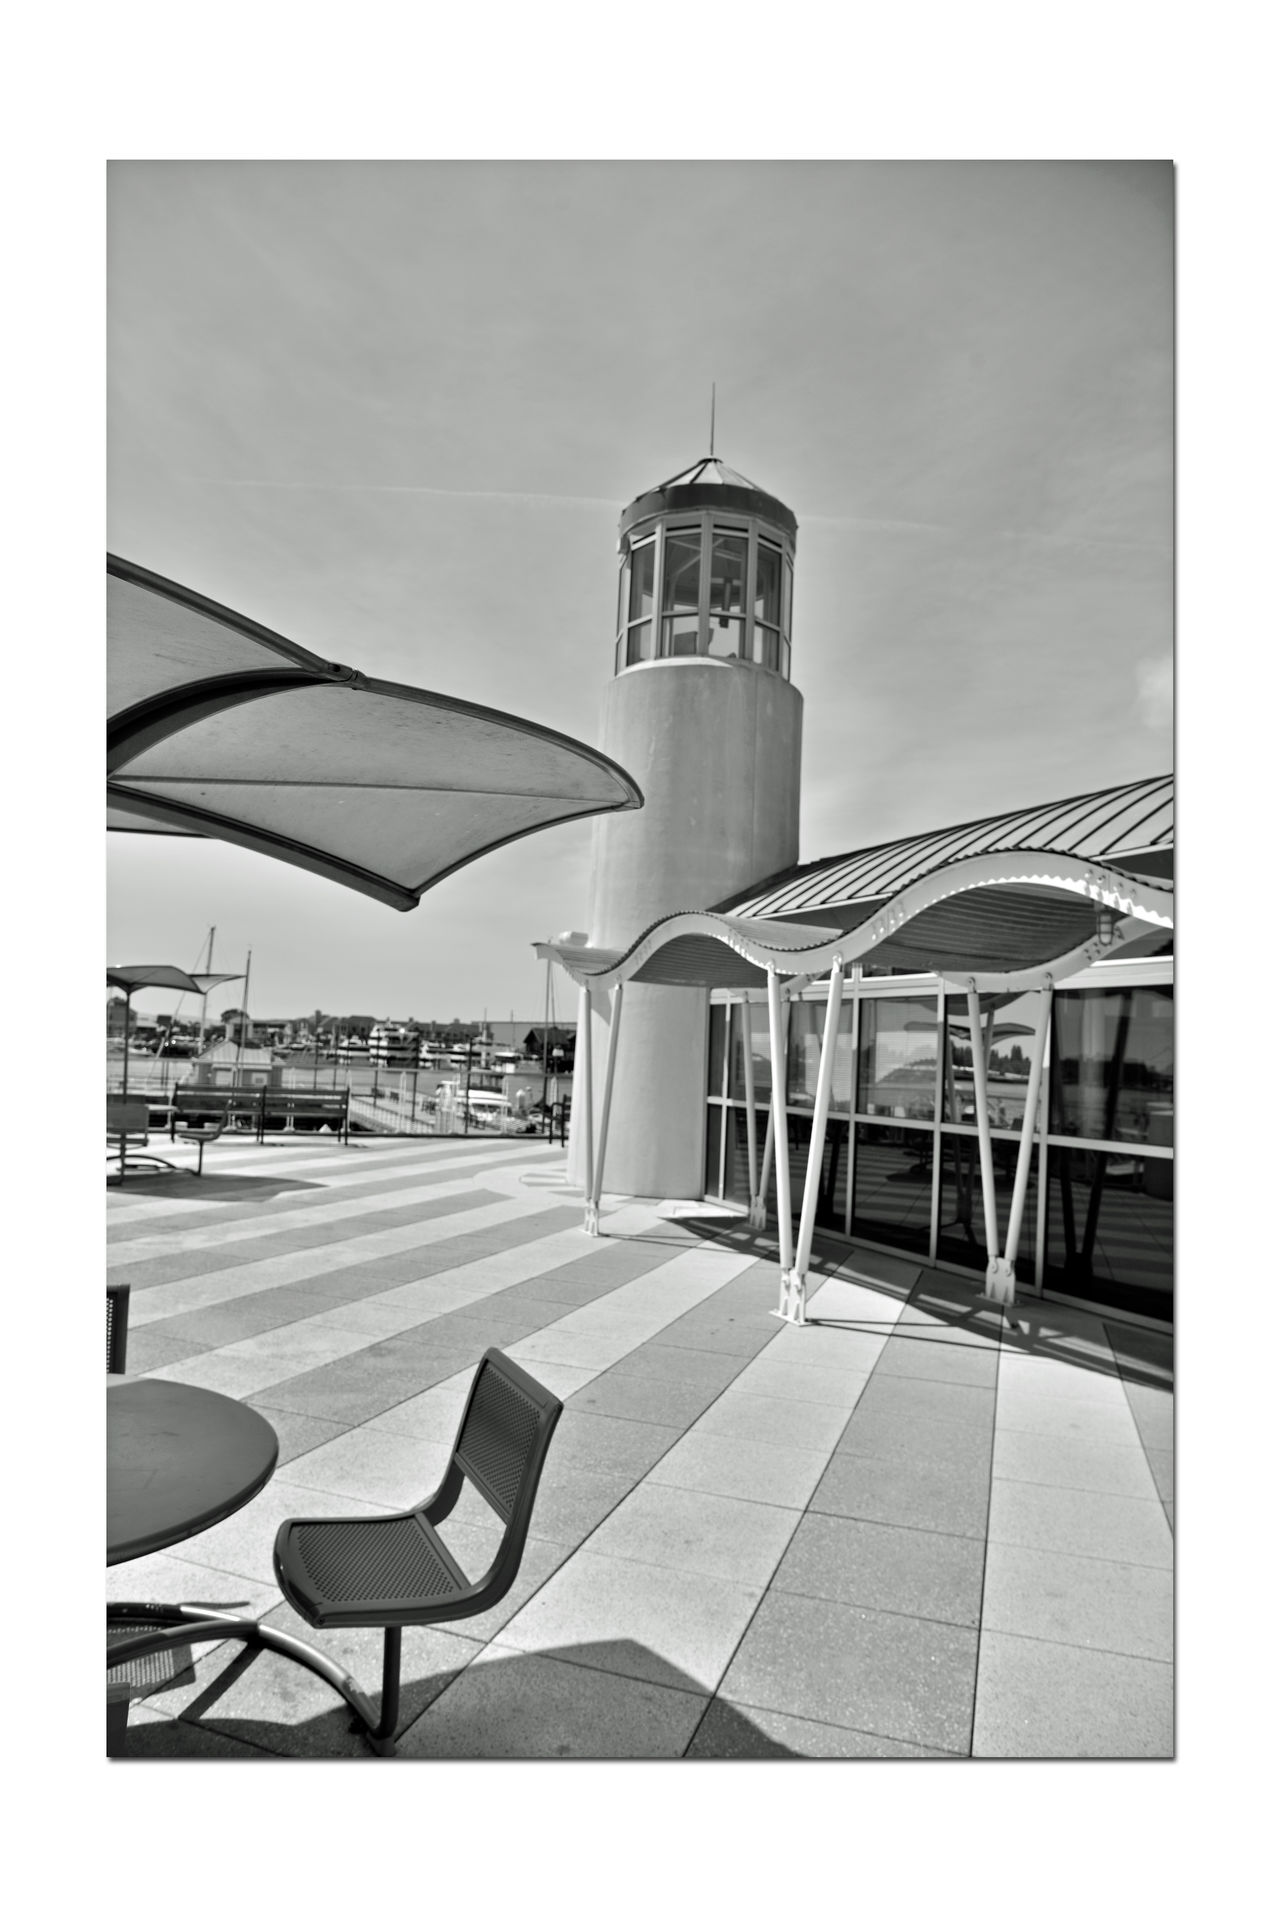 Observation Deck At Jack London Square 2 Embarcadero Cove Port Of Oakland, Ca. Art Is Everywhere Architecture Nautical Theme Architectural Feature Wave-rendered Awning Lookout Lighthouse Tower Ocean-tinted Glass Jack London Square Marina Nautical Fuel Depot Restaurant, Retail & Entertainment District Waterfront Opposite Shore Alameda Marina Monochrome Photograhy Monochrome Black & White Black & White Photography Black And White Collection  Black And White Deck Seating Shadows